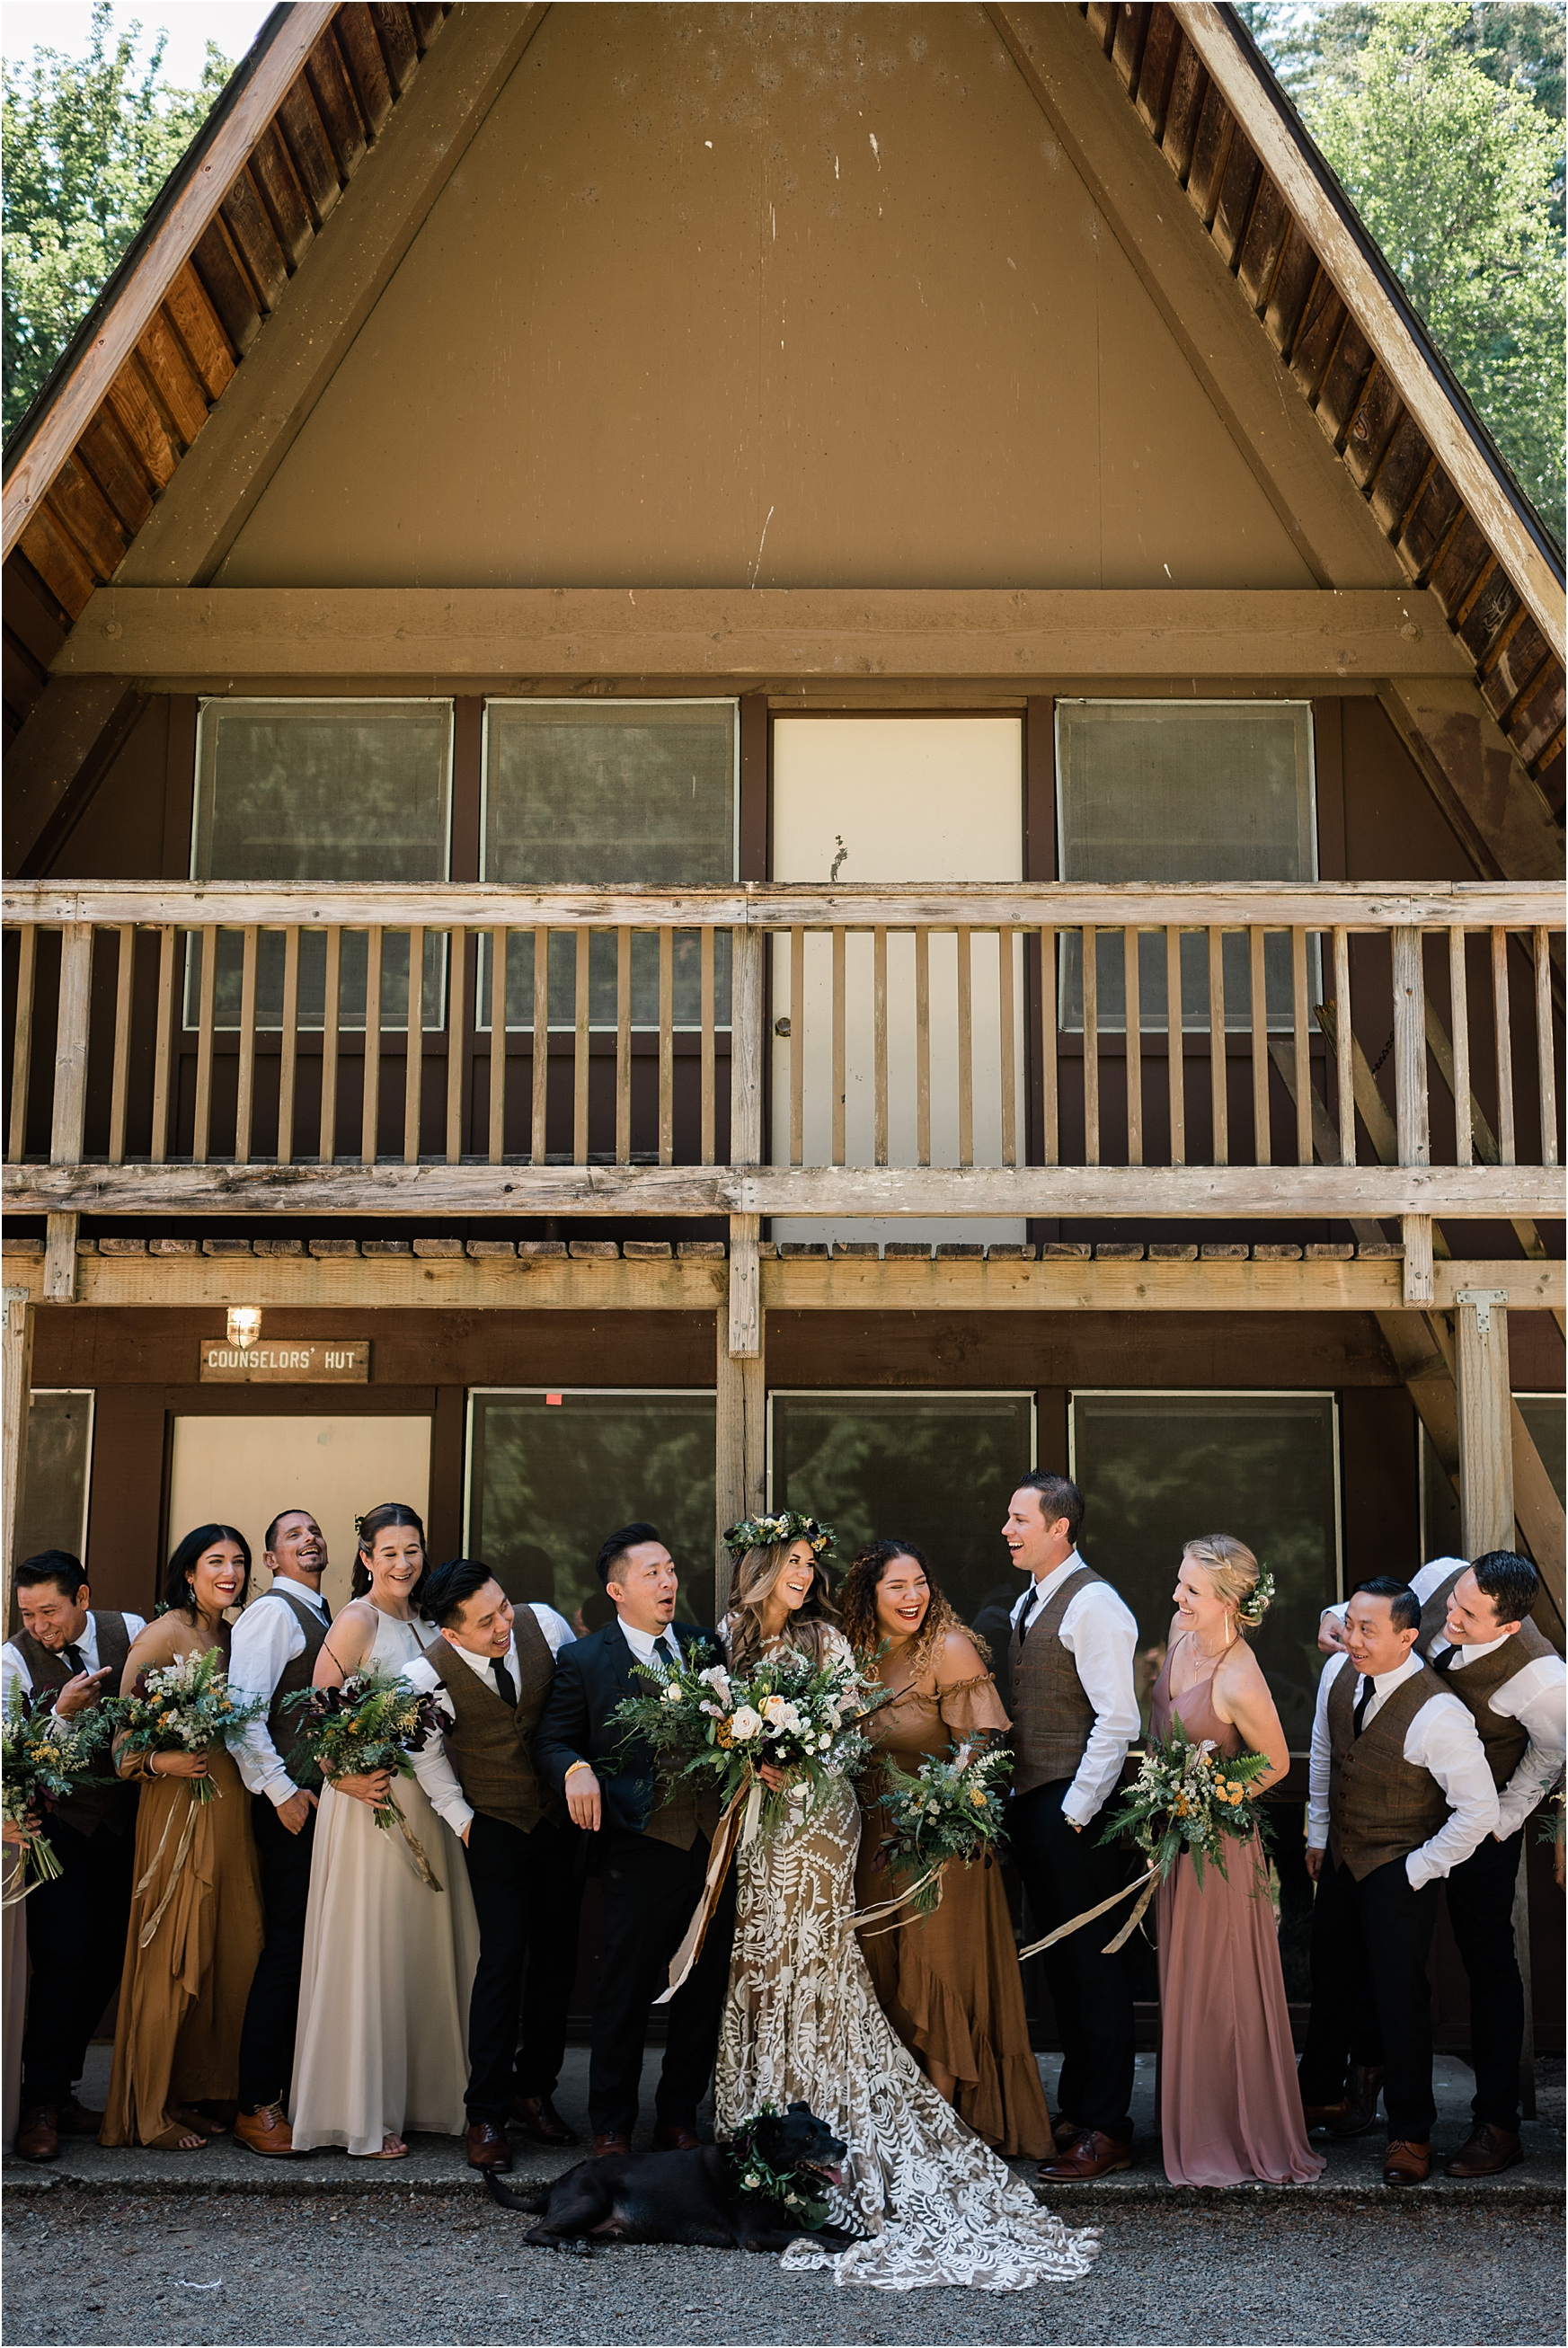 Wedding Party at Cassy & Viva's bohemian Oregon destination wedding at Camp Lane. Image by Forthright Photo.